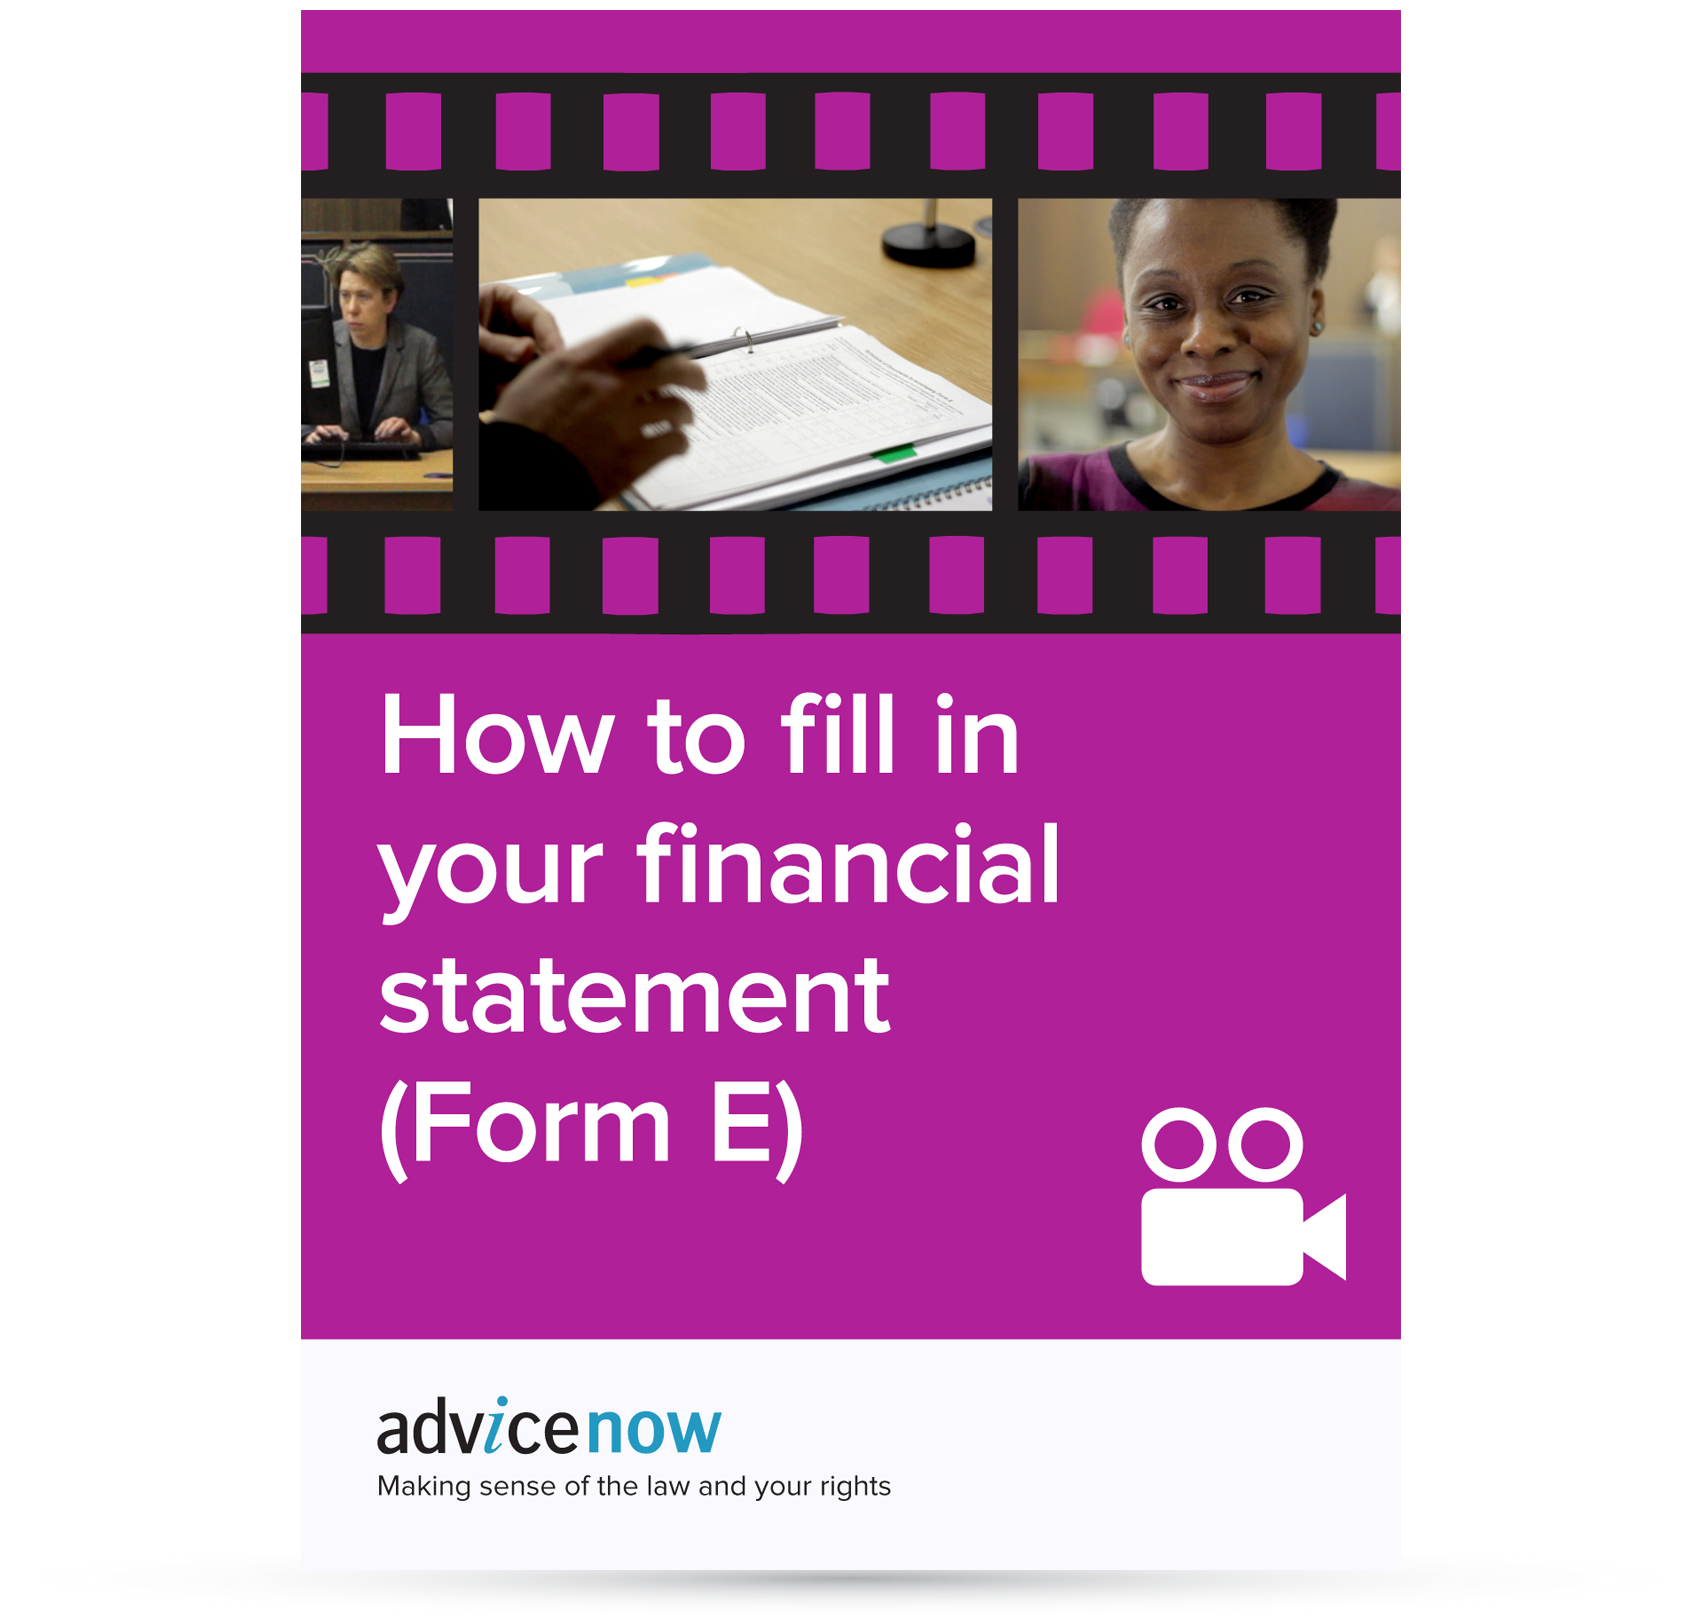 how to fill in your financial statement form e film advicenow